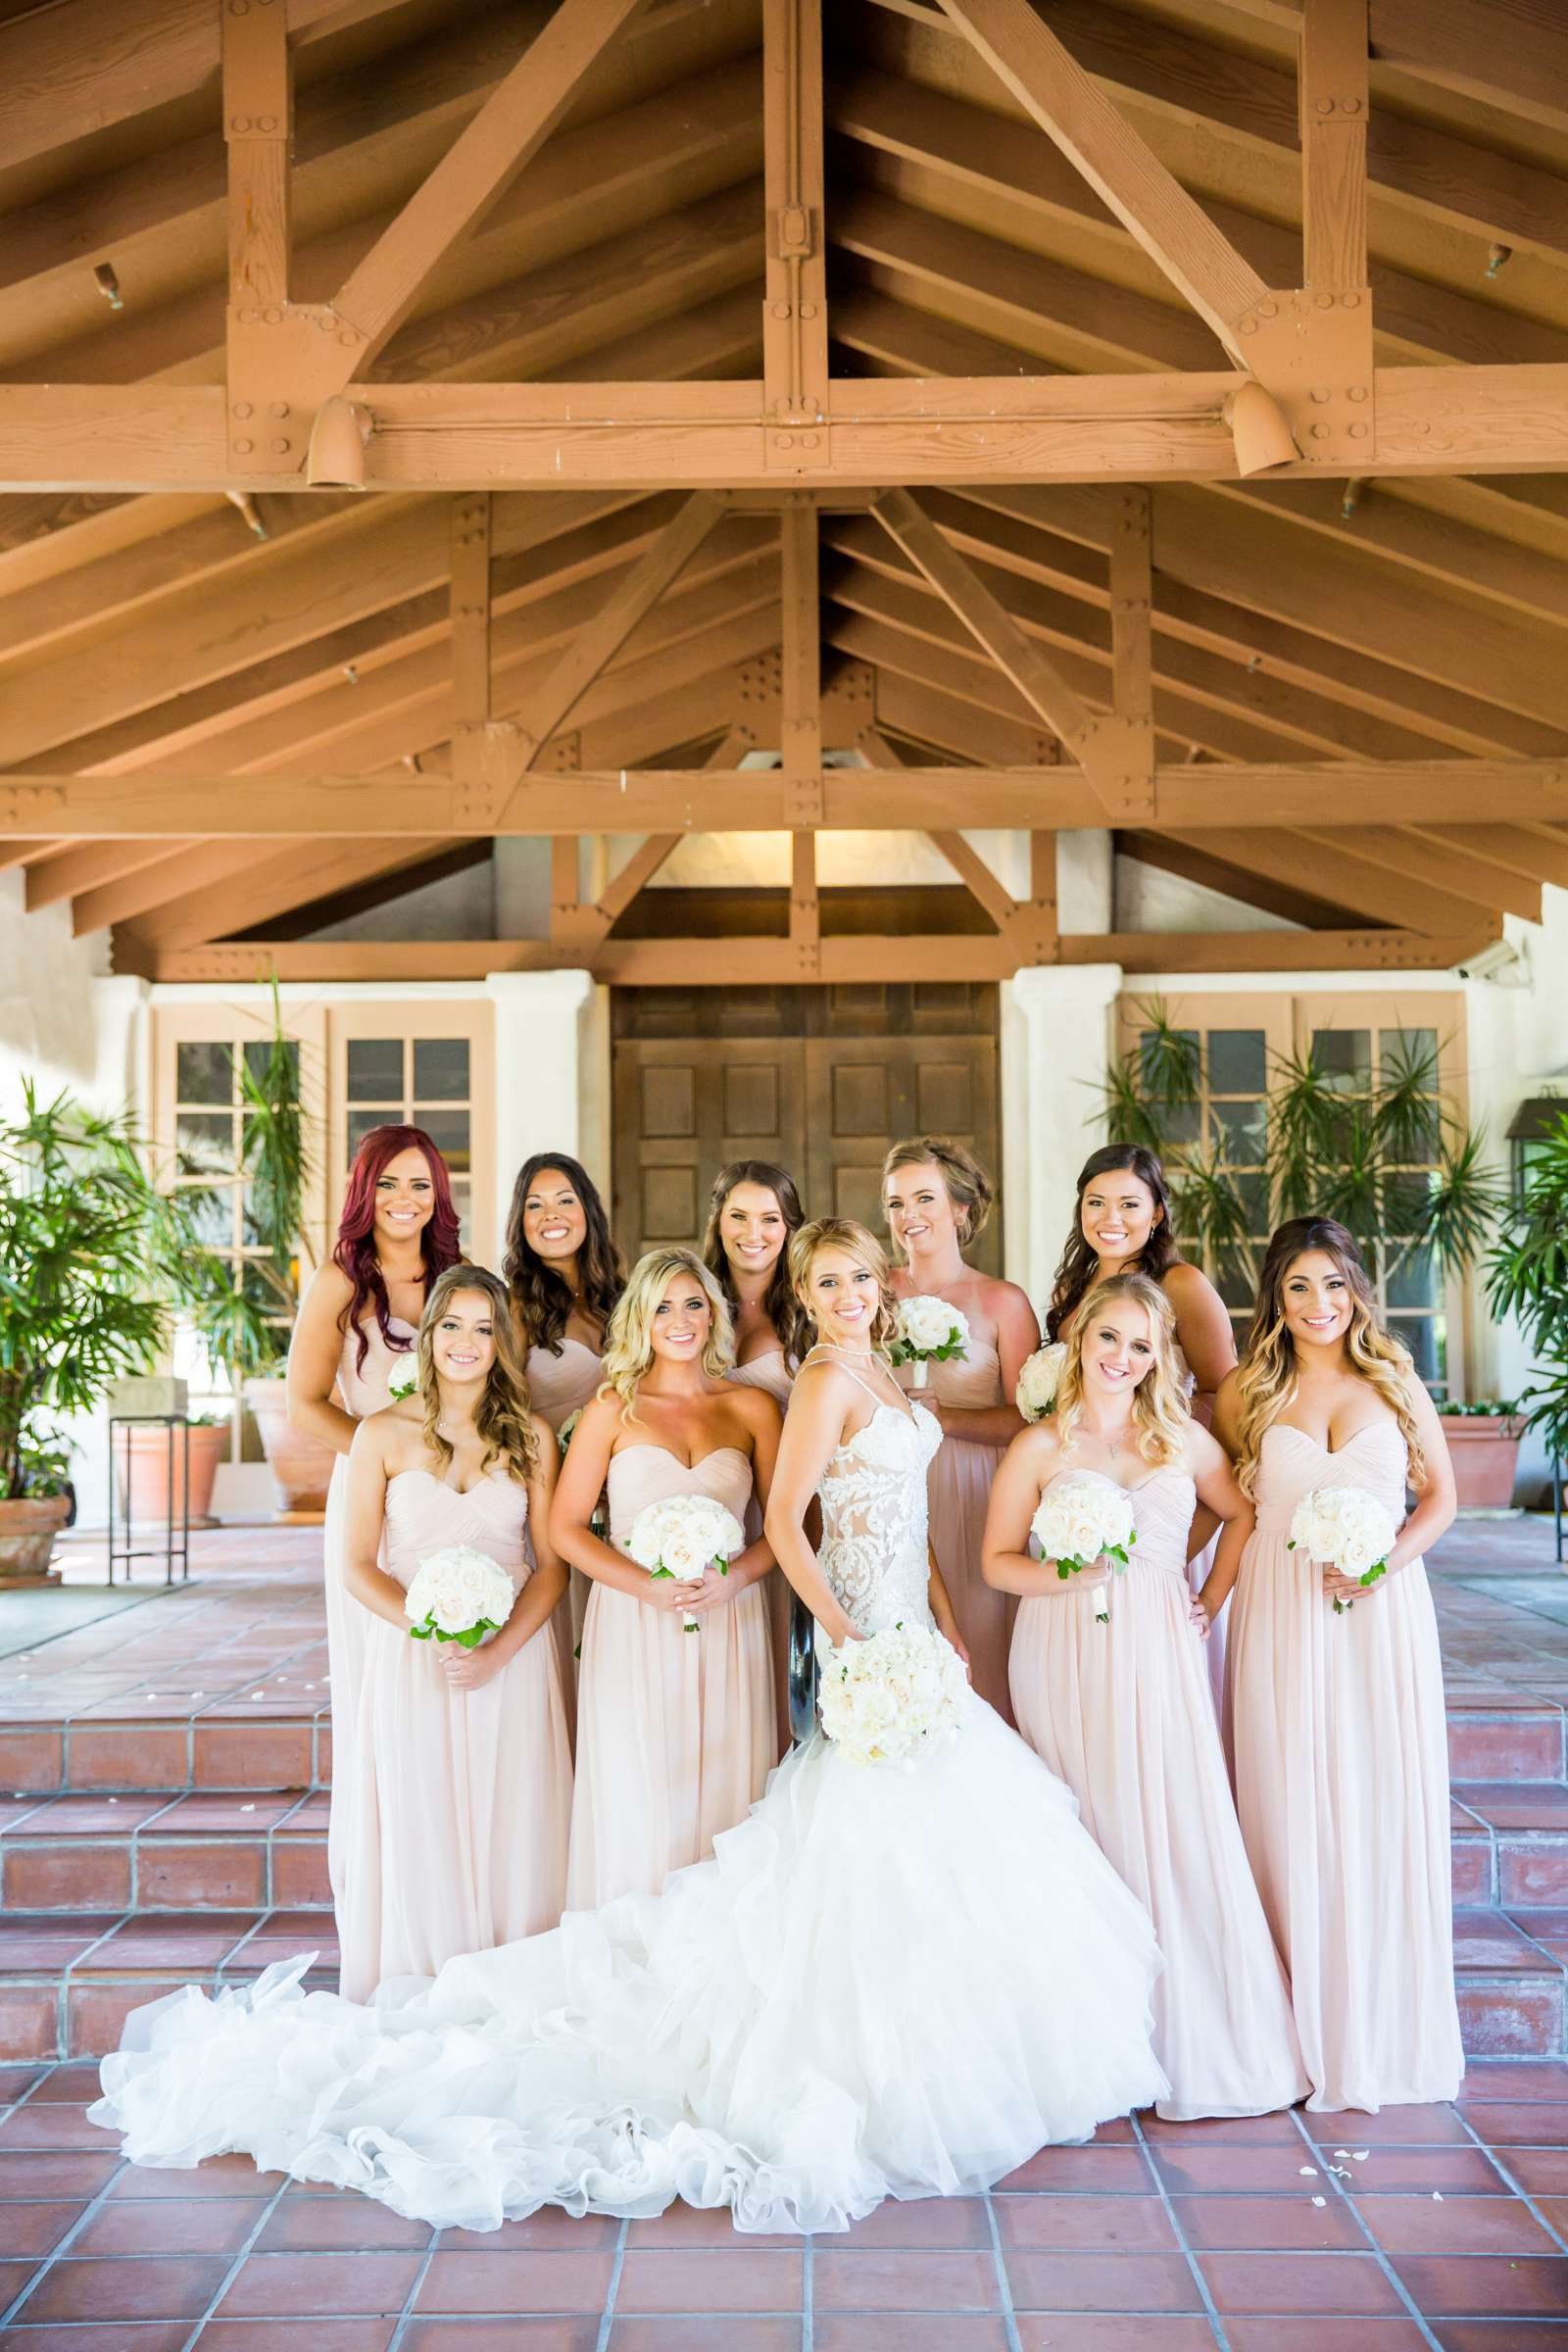 Fairbanks Ranch Country Club Wedding coordinated by Monarch Weddings, Gabriella and Kyle Wedding Photo #59 by True Photography